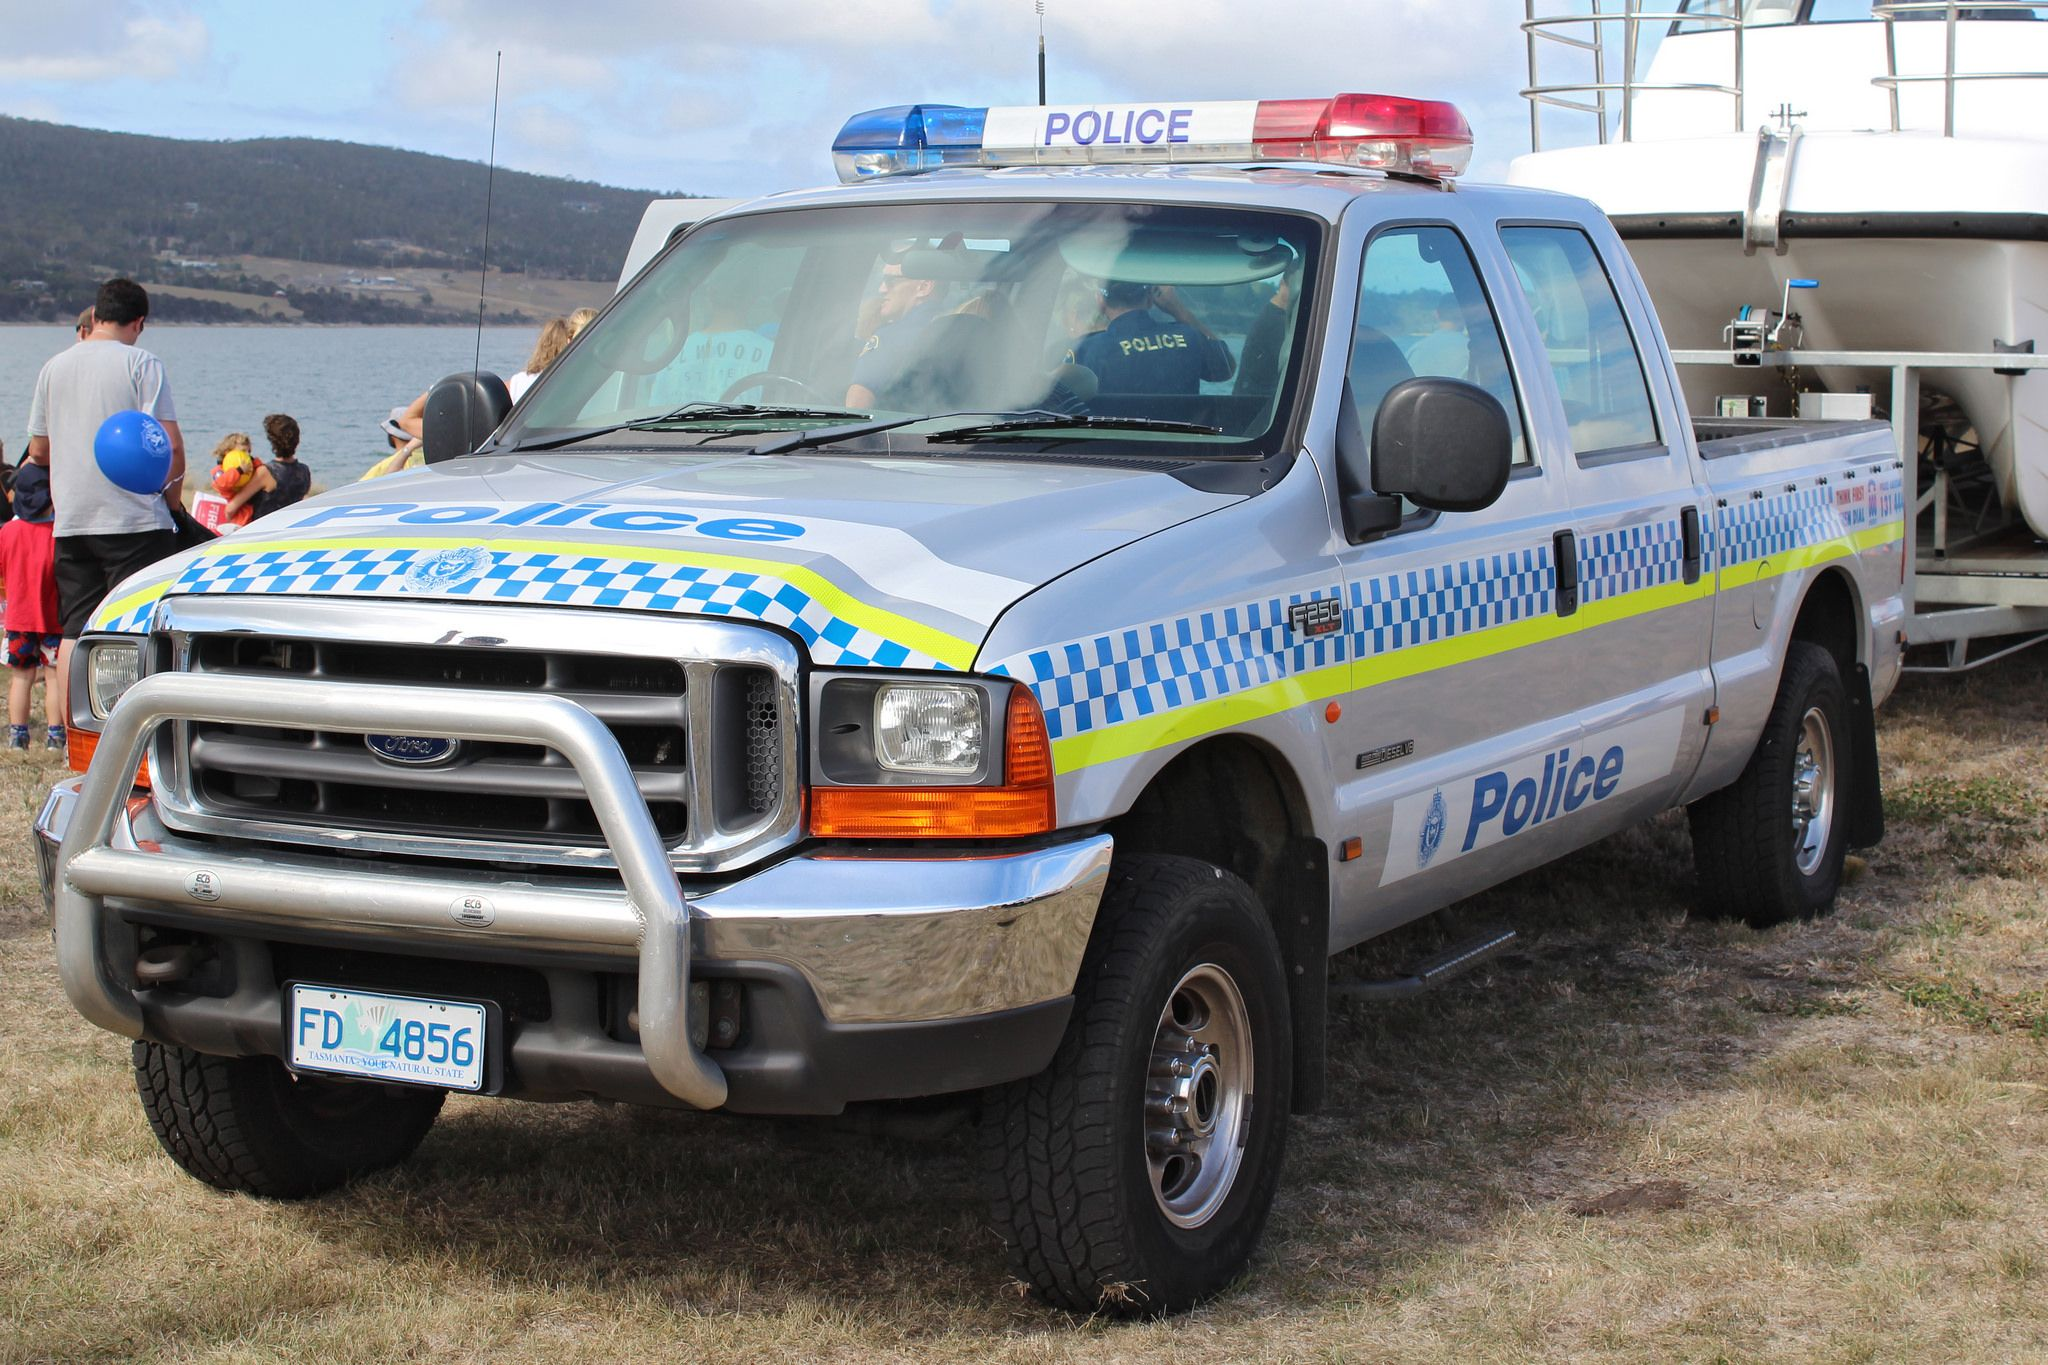 Https flic kr p ew51nw tasmania police ford f 250 marine unit rare this truck is used for towing the police catamaran feel free to check out my